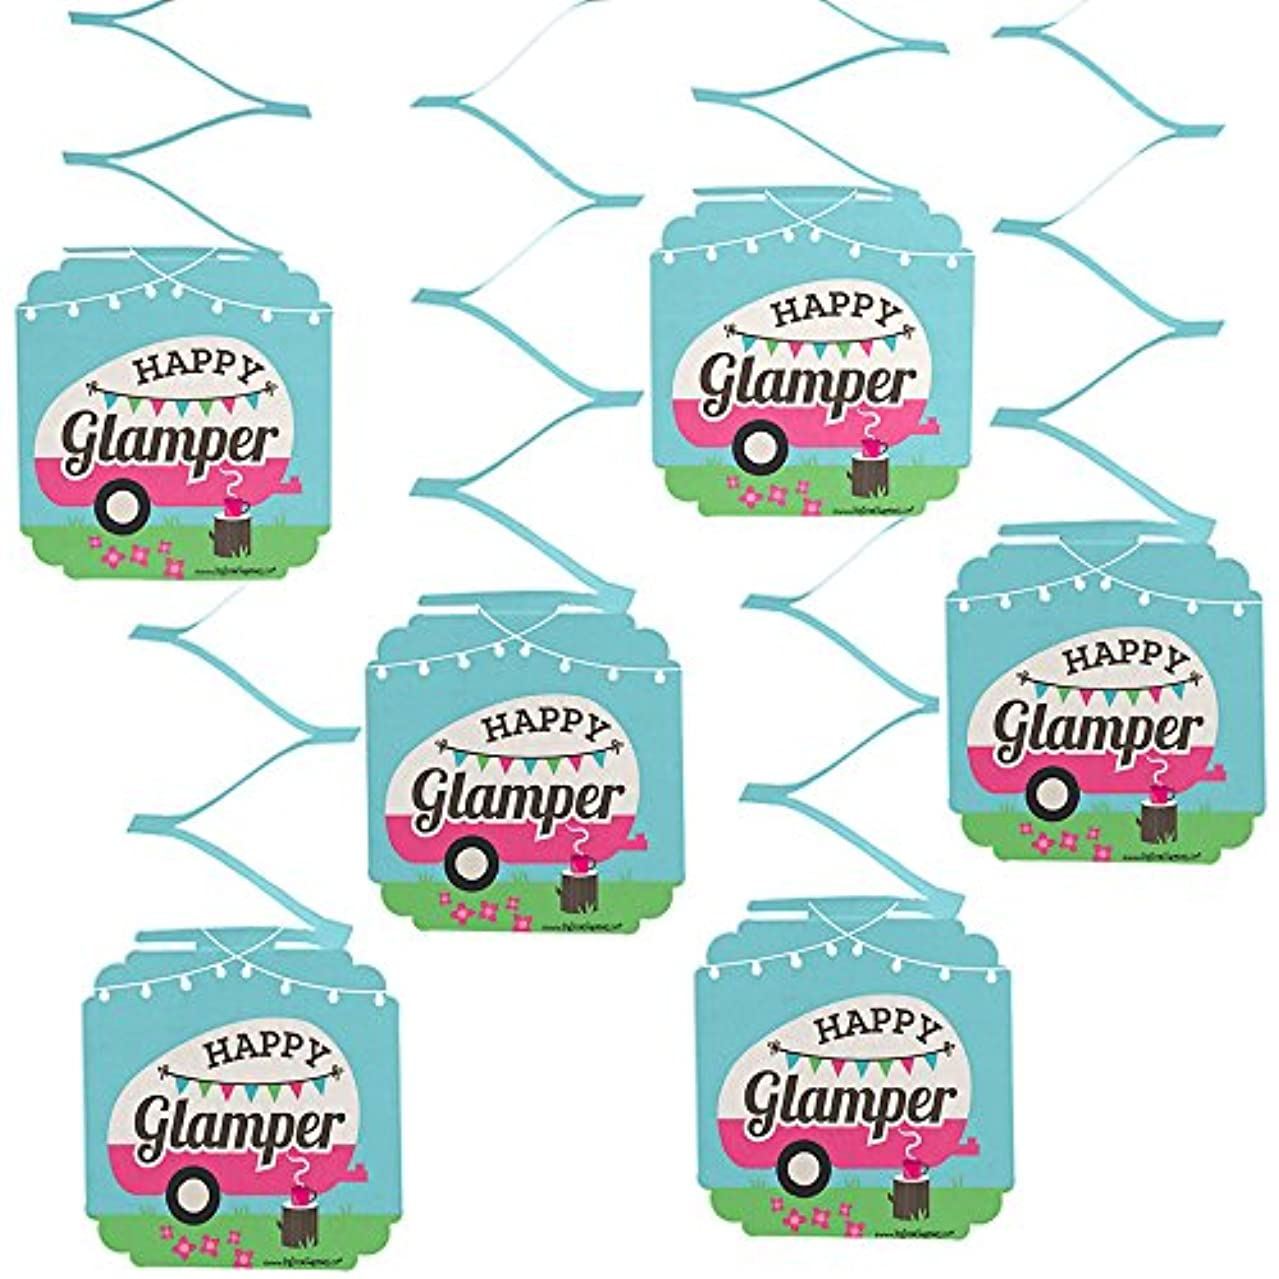 Let's Go Glamping - Camp Glamp Party or Birthday Party Hanging Decorations - 6 Count